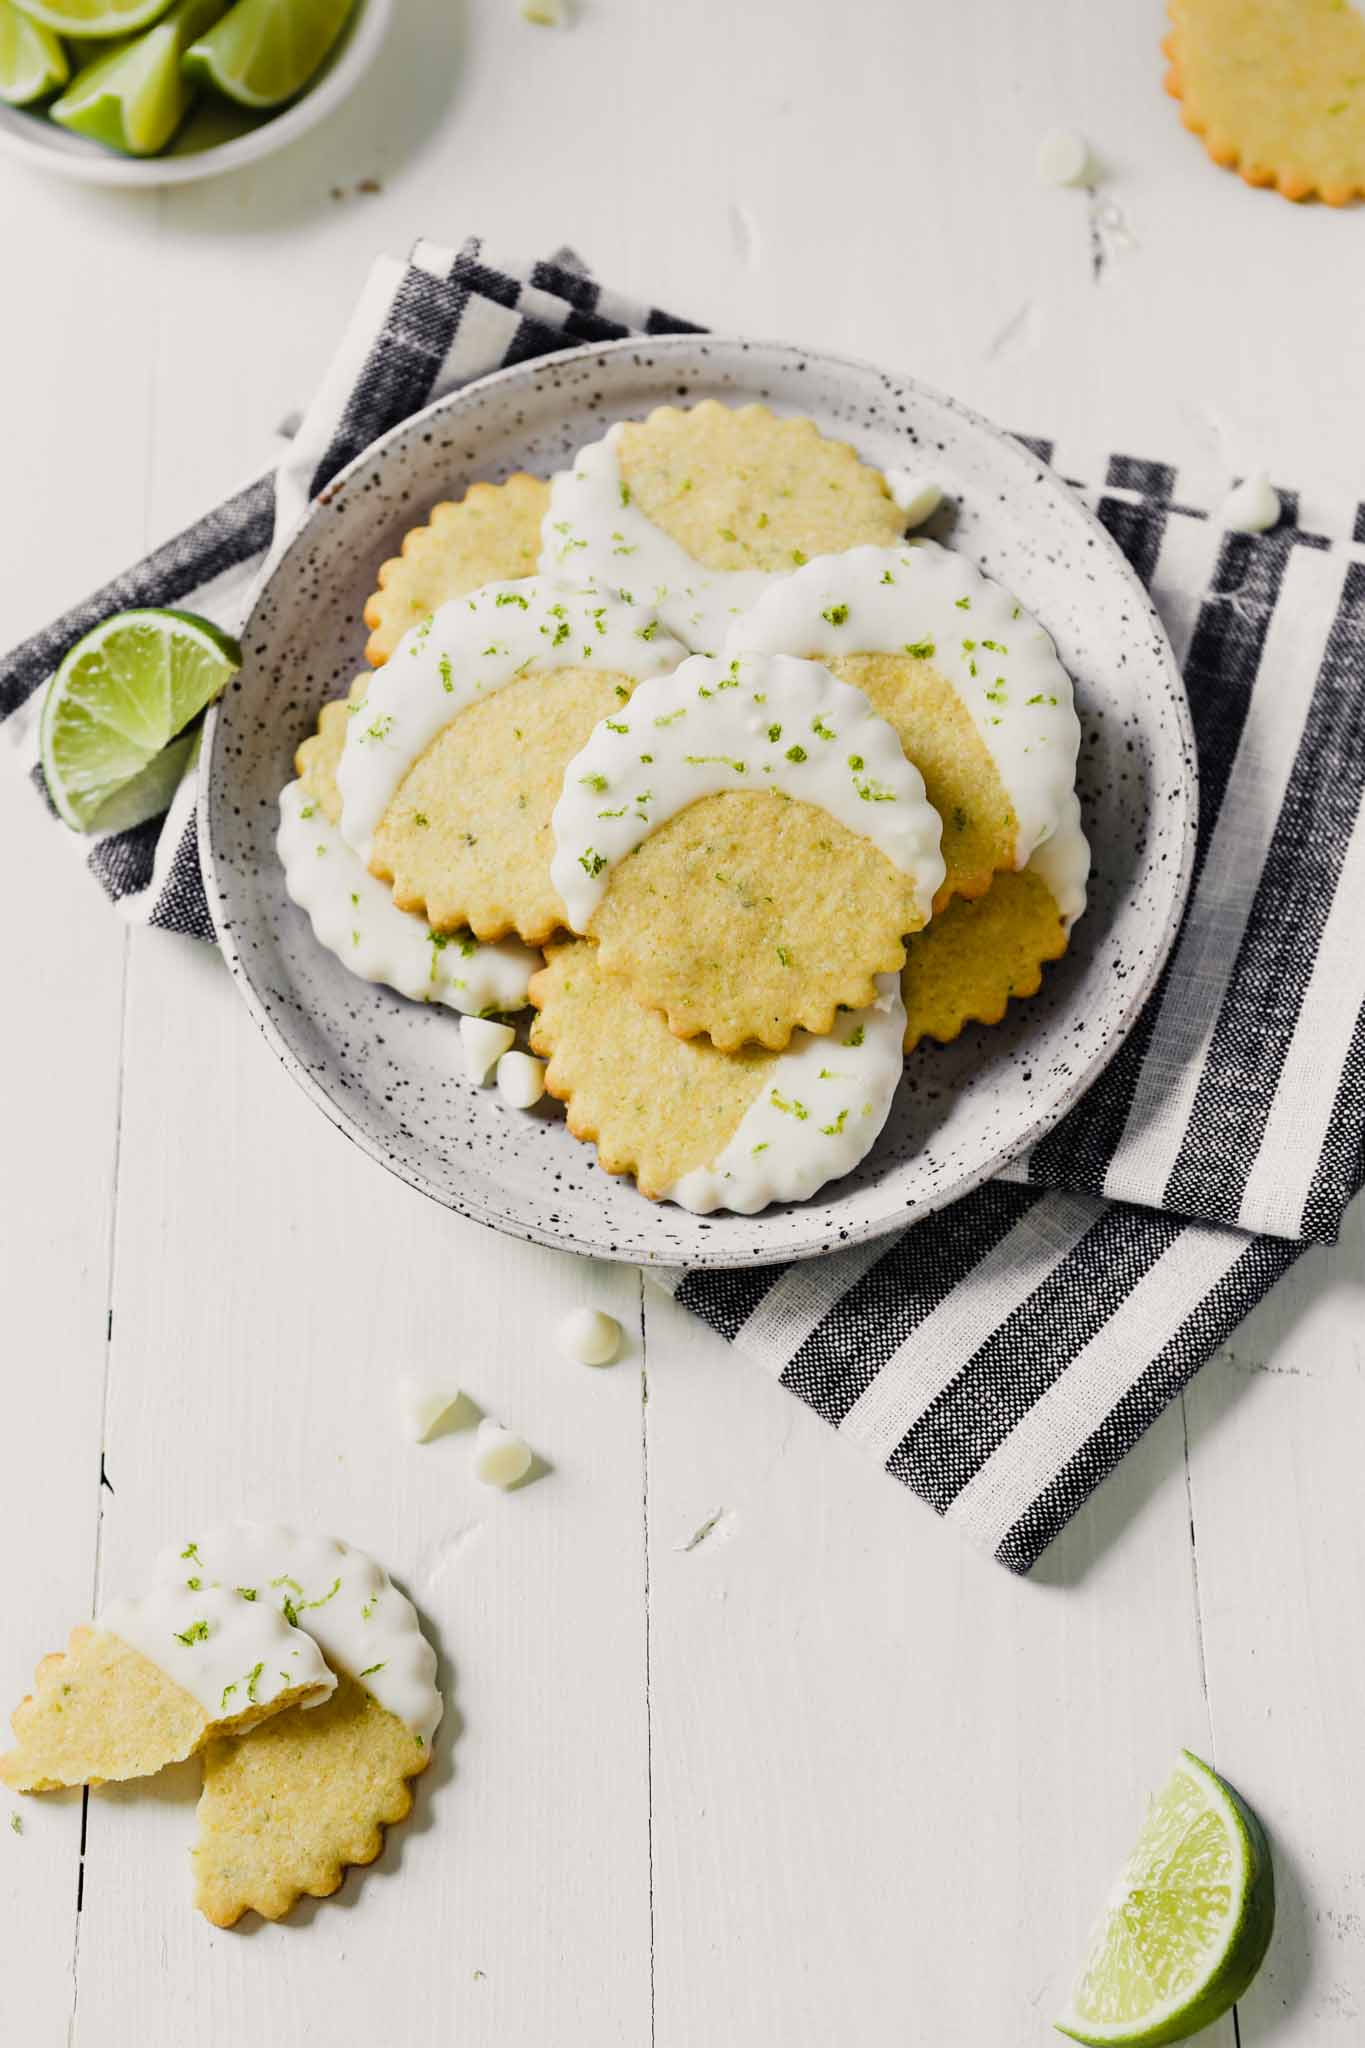 Photograph of glazed cornmeal cookies stacked on a speckled plate on a white table with limes scattered about